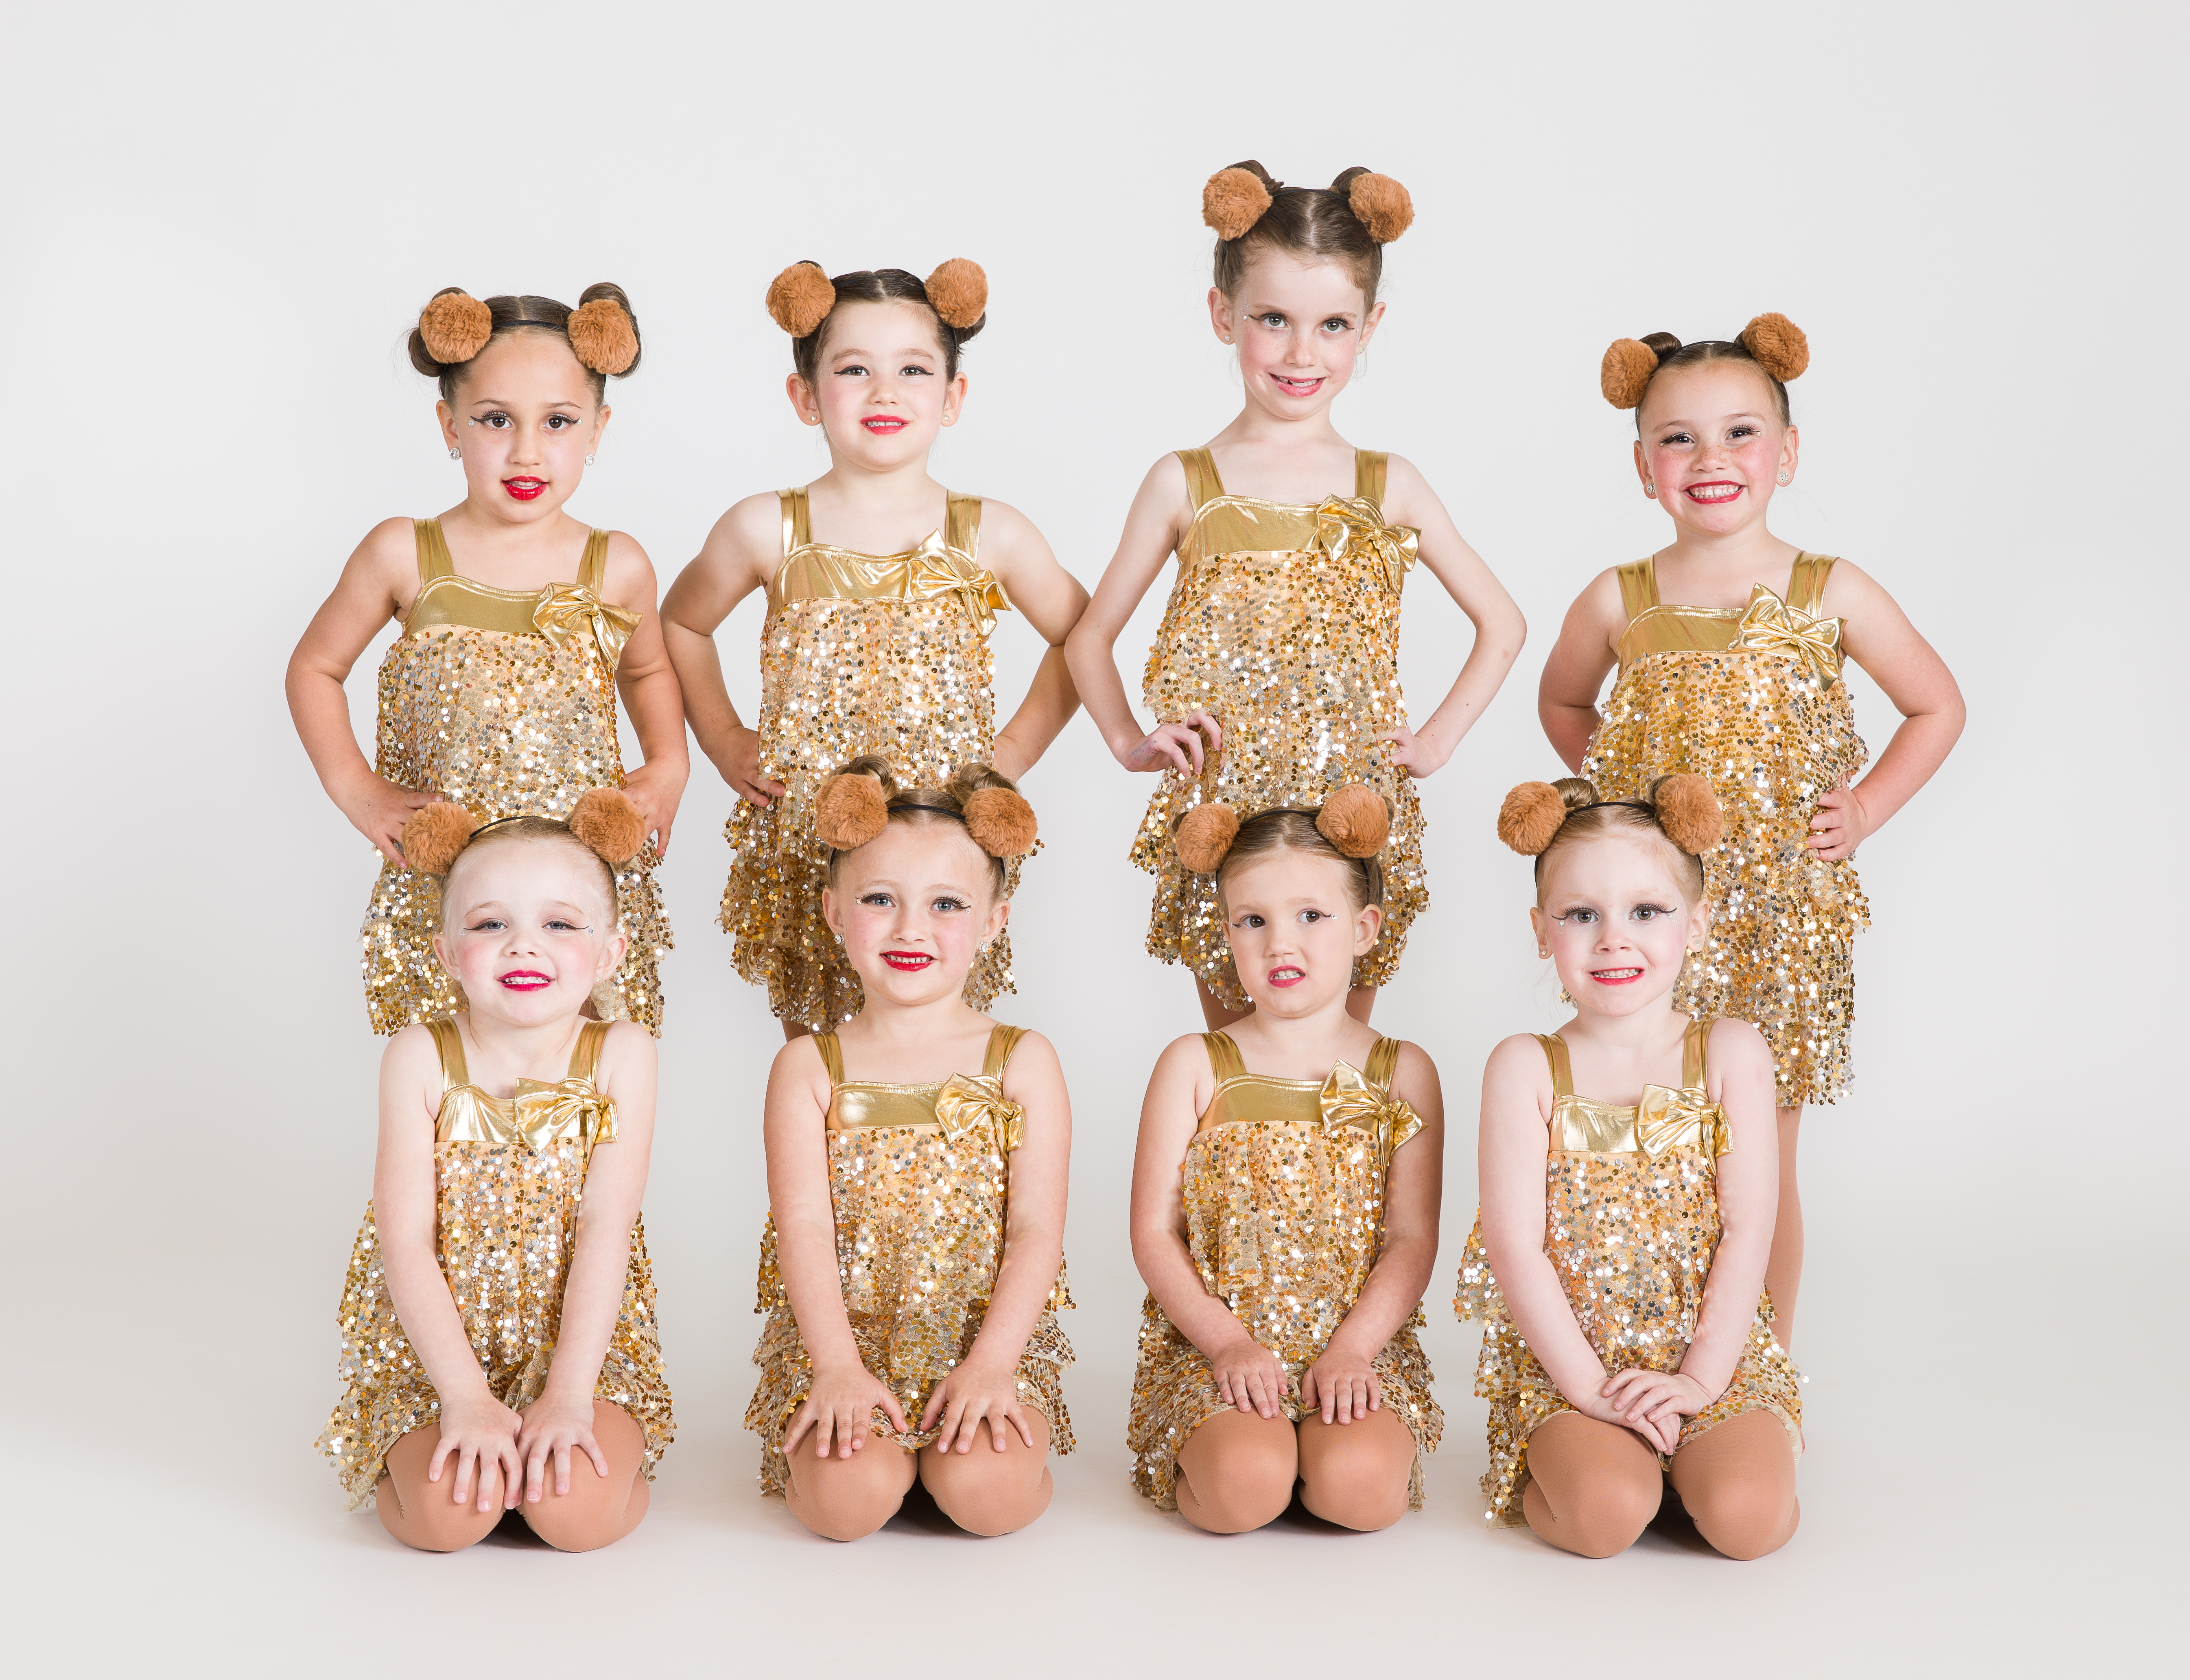 2019-4-13-the-dance-spot-recital3362-Pri